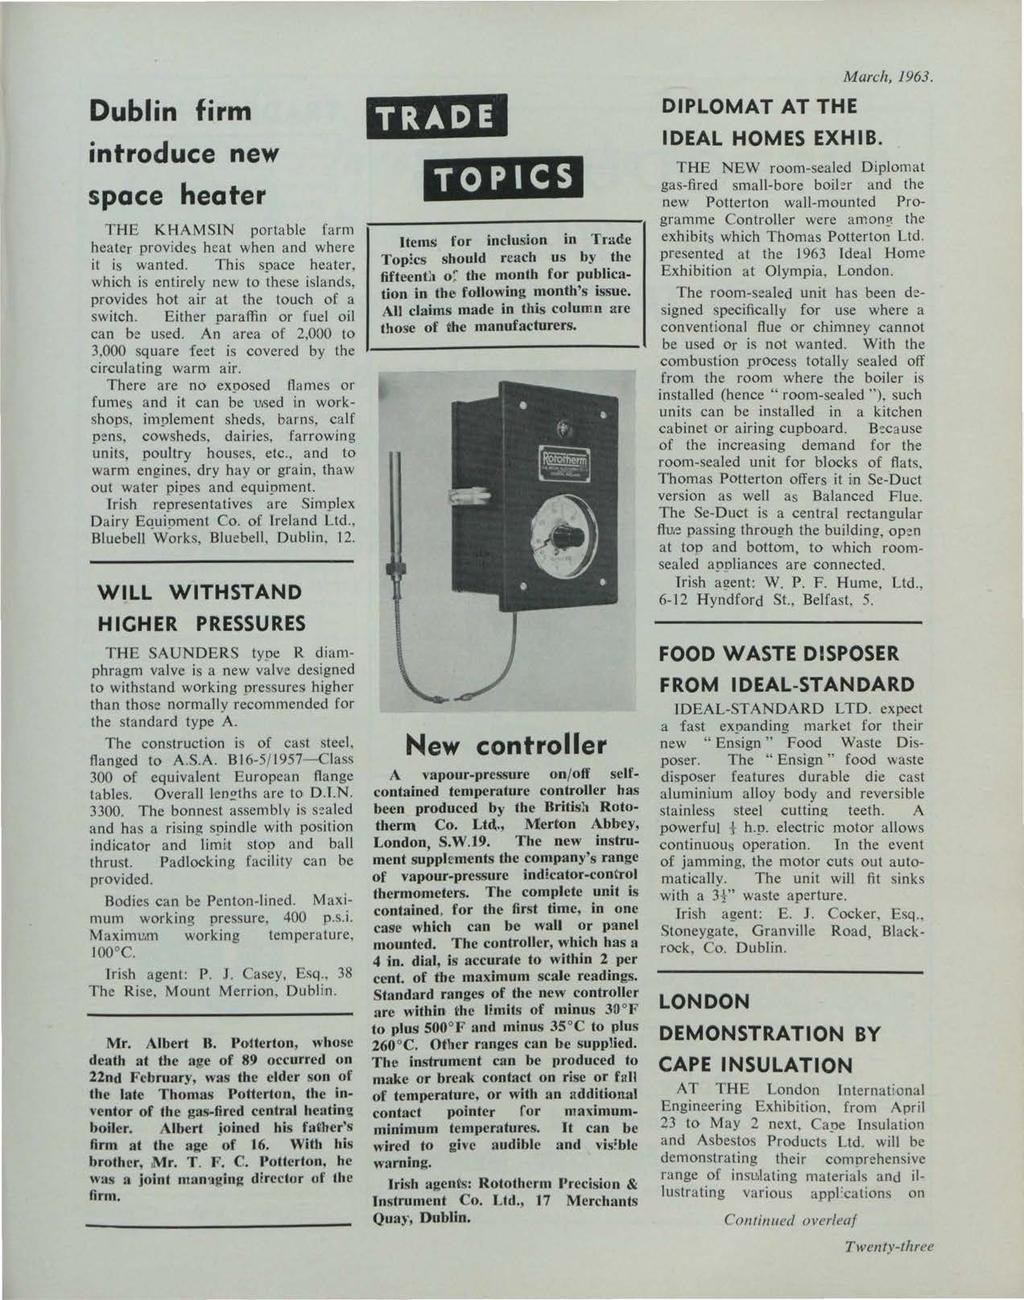 et al.: The Irish Plumber and Heating Contractor, March 1963 (complete is Dublin firm introduce new space heater THE KHAMSIN portable farm heater provides heat when and where it is wanted.